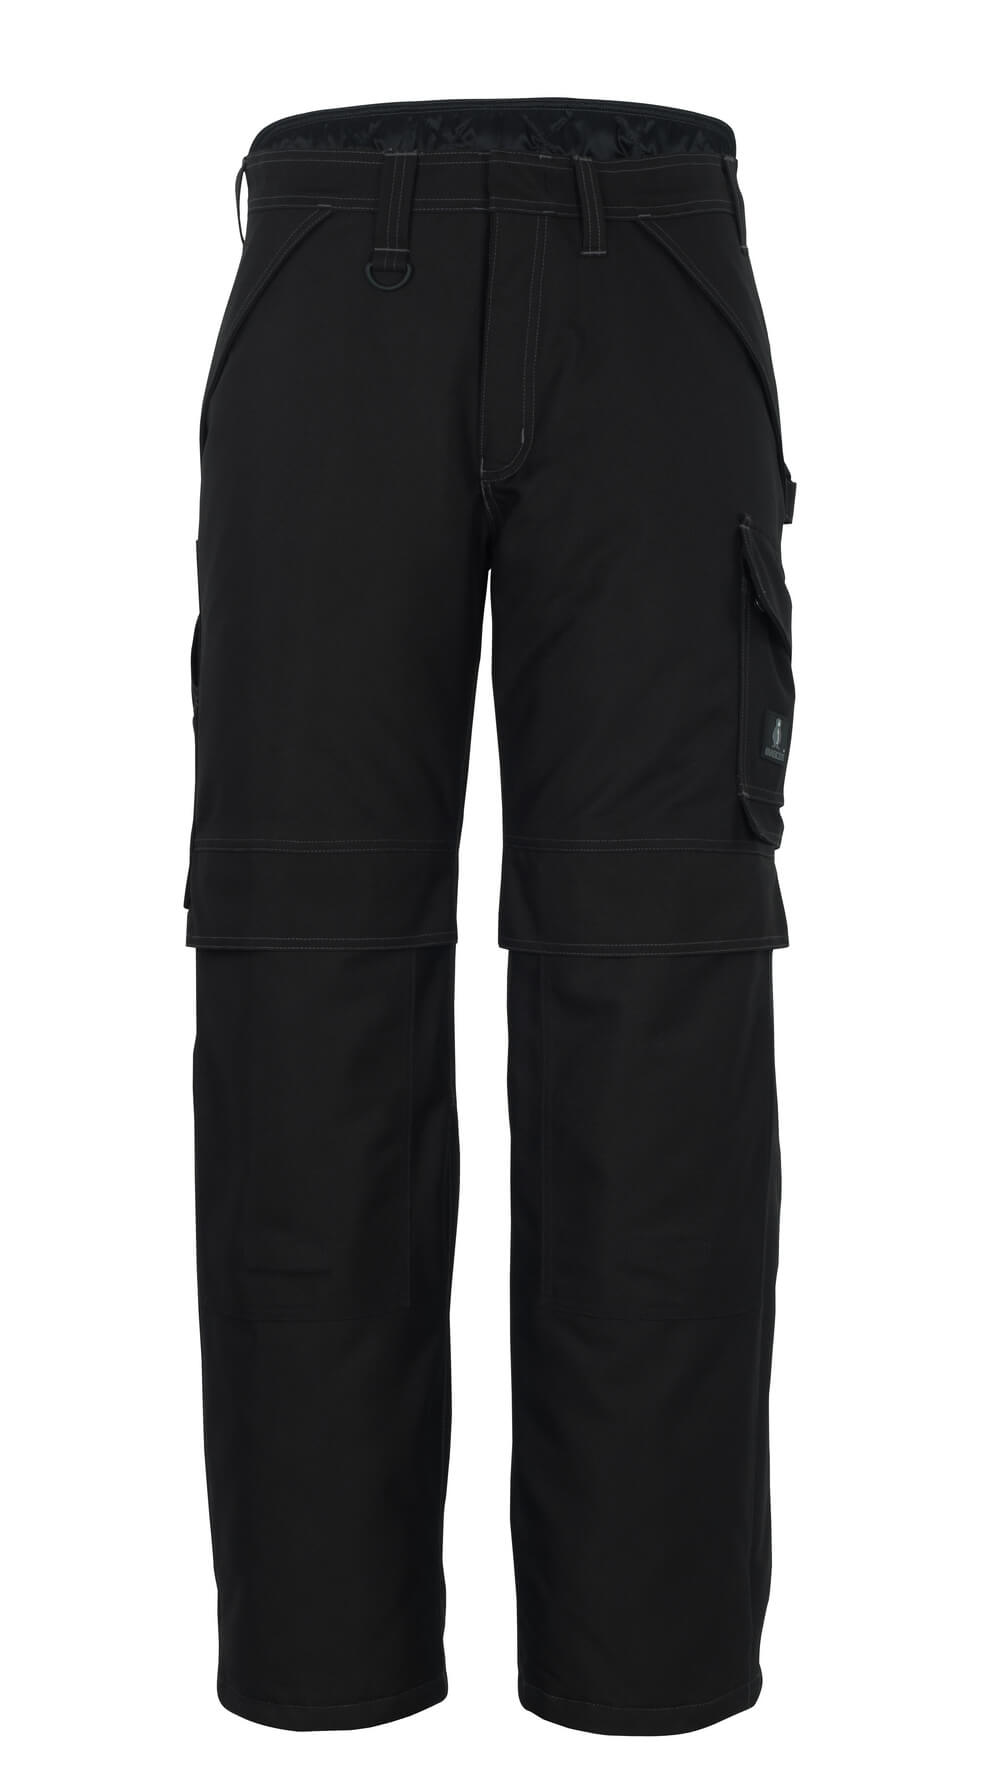 10090-194-09 Winter Trousers with kneepad pockets - black